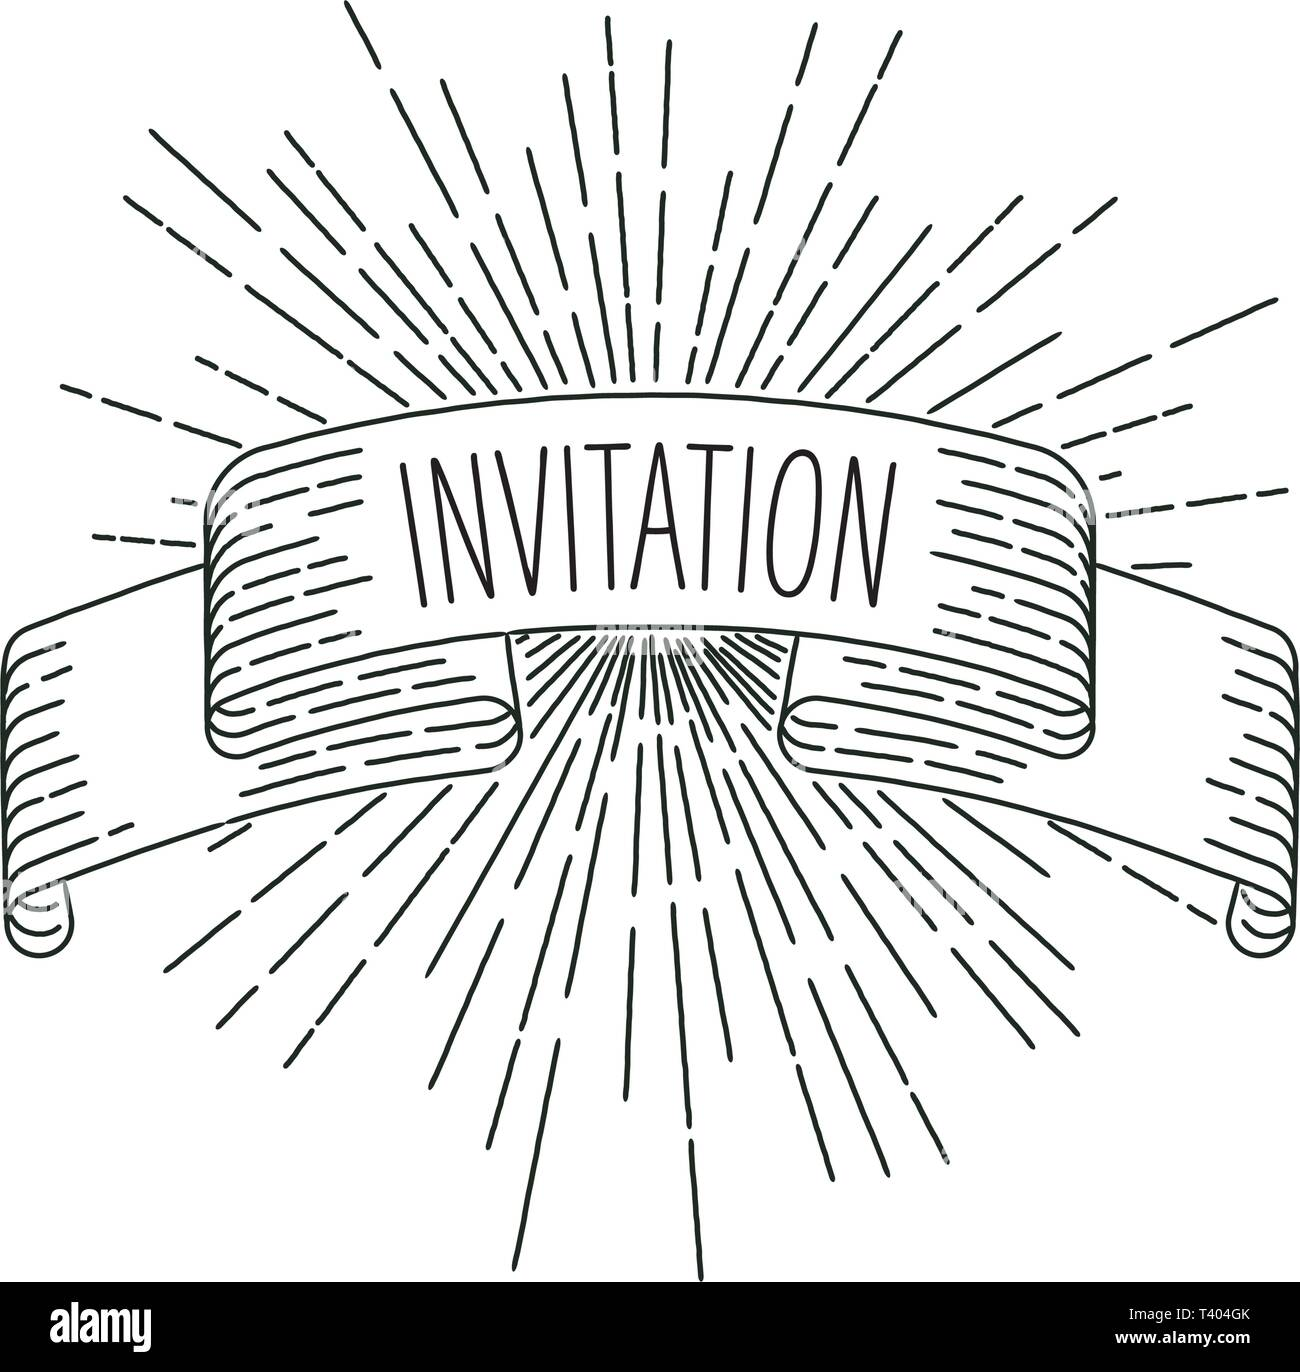 Invitation banner. Ribbon banner greeting card in vintage look with word invitation, engraving style graphic. Retro design element. Vector Illustratio - Stock Image